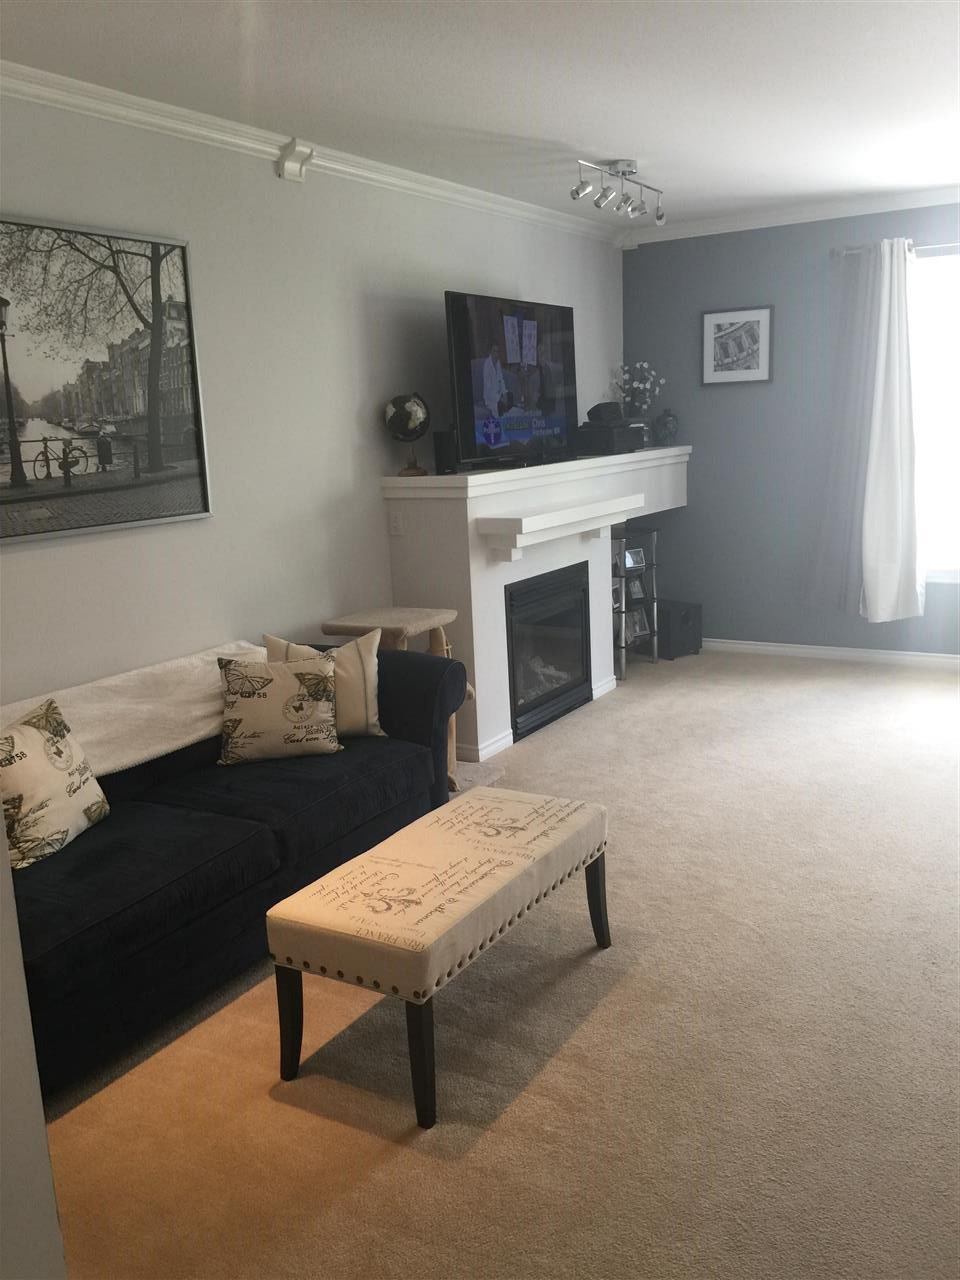 Photo 4: Photos: 24 14952 58TH Avenue in Surrey: Sullivan Station Townhouse for sale : MLS®# R2159568